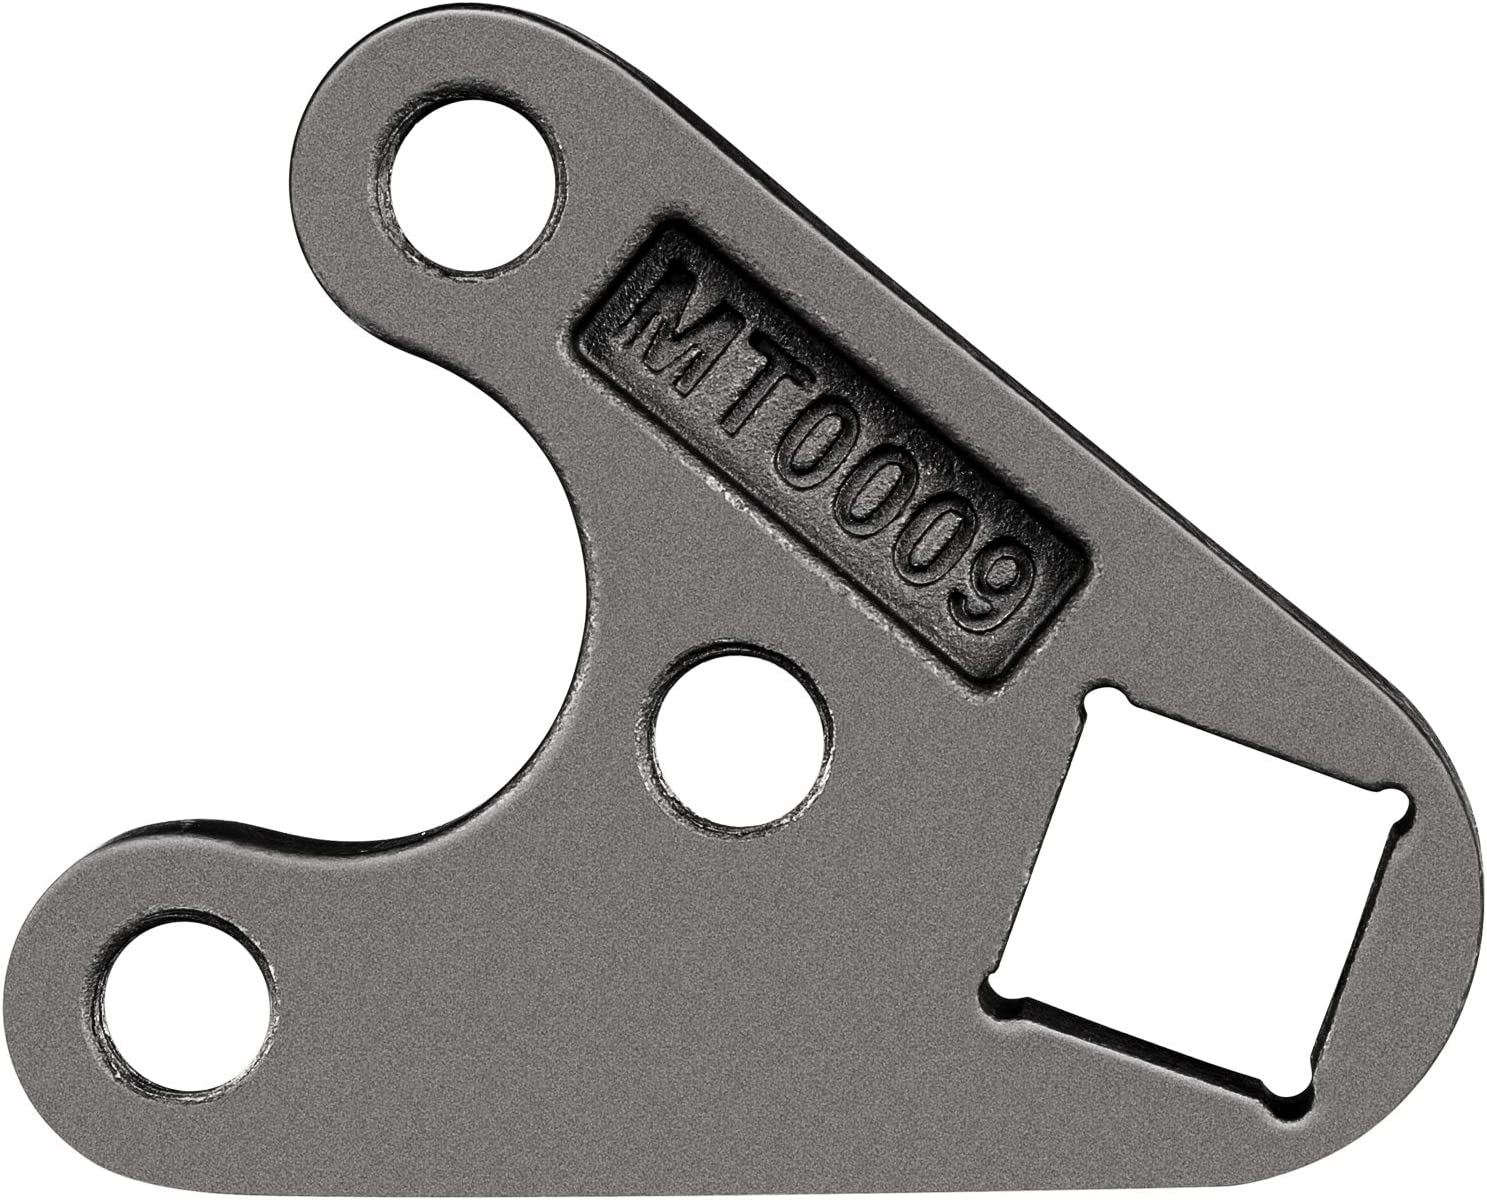 YB-06548 Evinrude and Honda Suzuki Johnson Compatible with Yamaha V-SEK Outboard Trim//Tilt Pin Wrench MT0009-35mm x 6mm